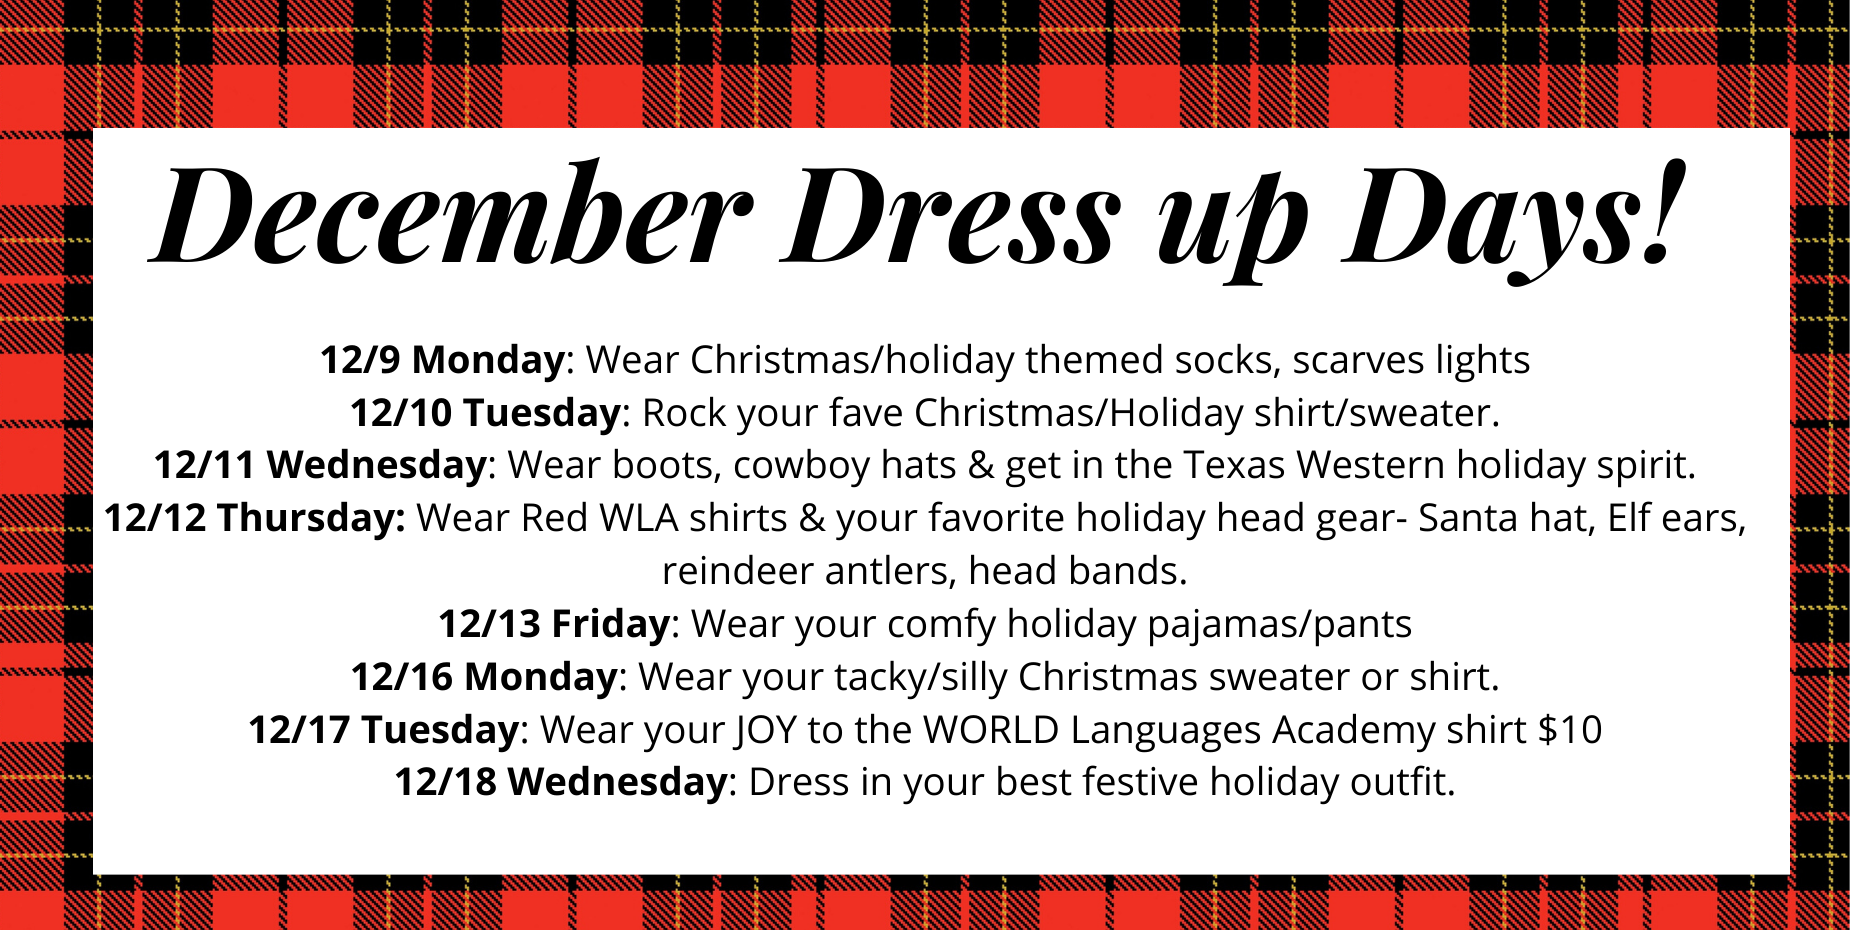 Image shows plaid background and details school dress up days.